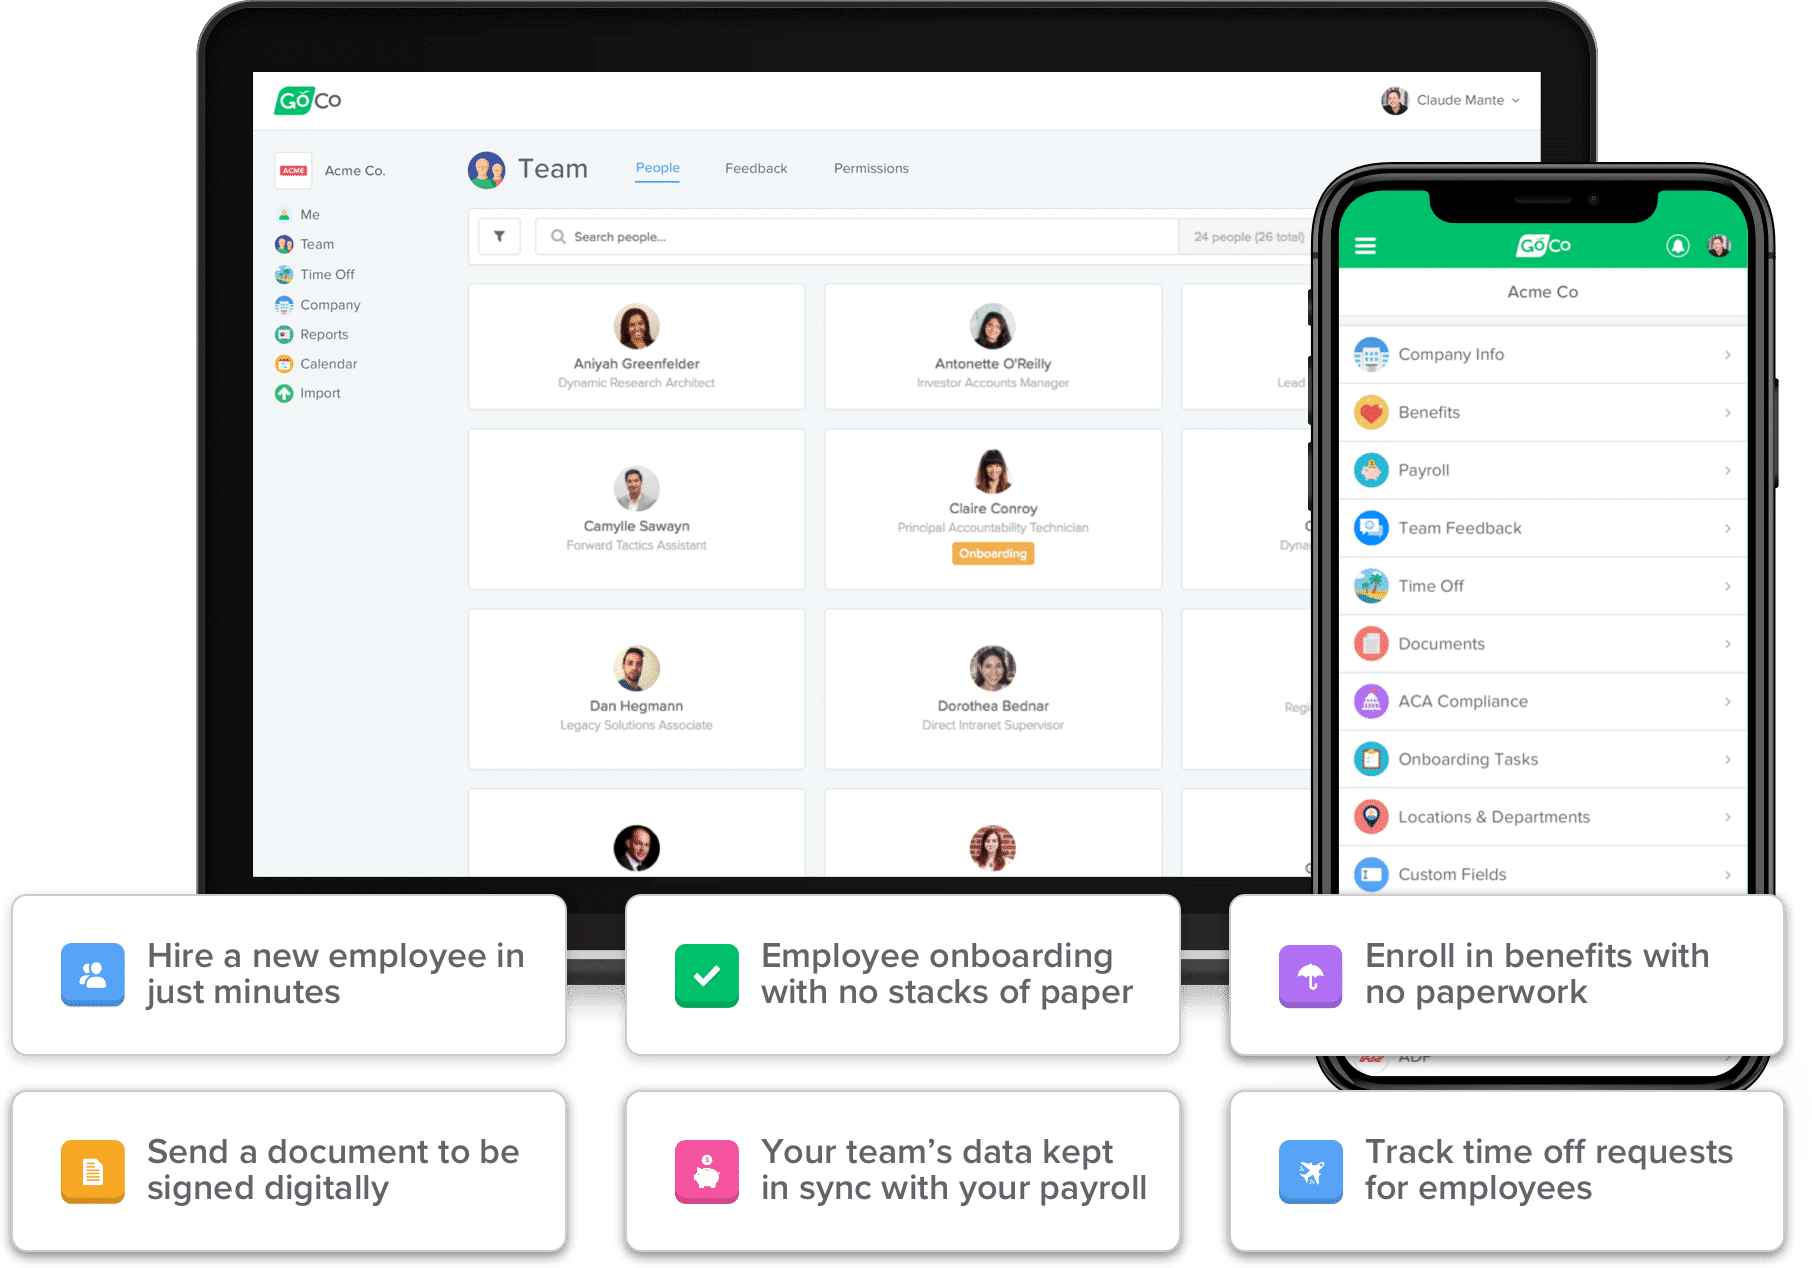 GoCo io | Free HR Software for Small Businesses